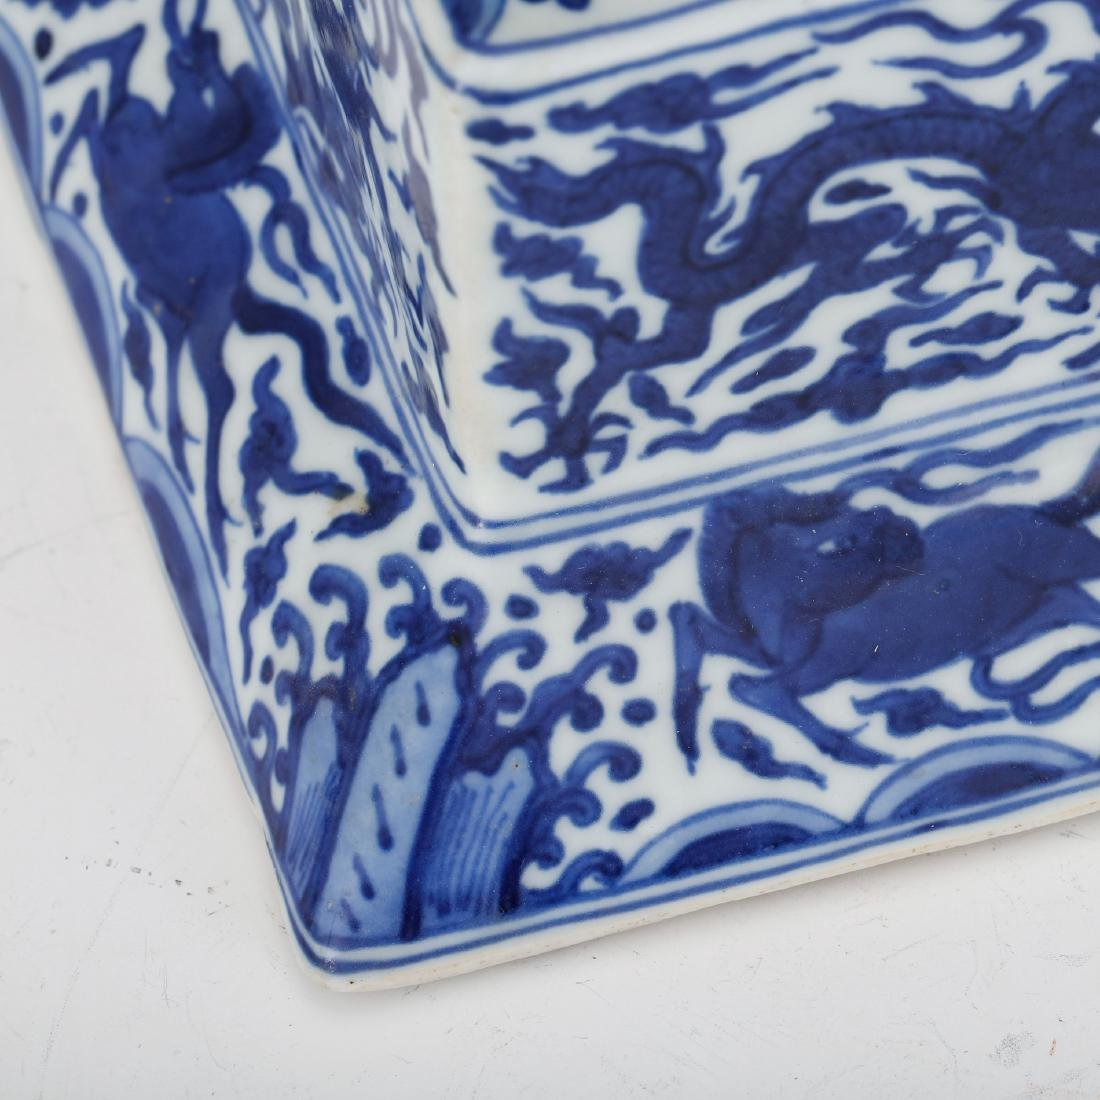 CHINESE BLUE AND WHITE PORCELAIN INK PALETTE - 5